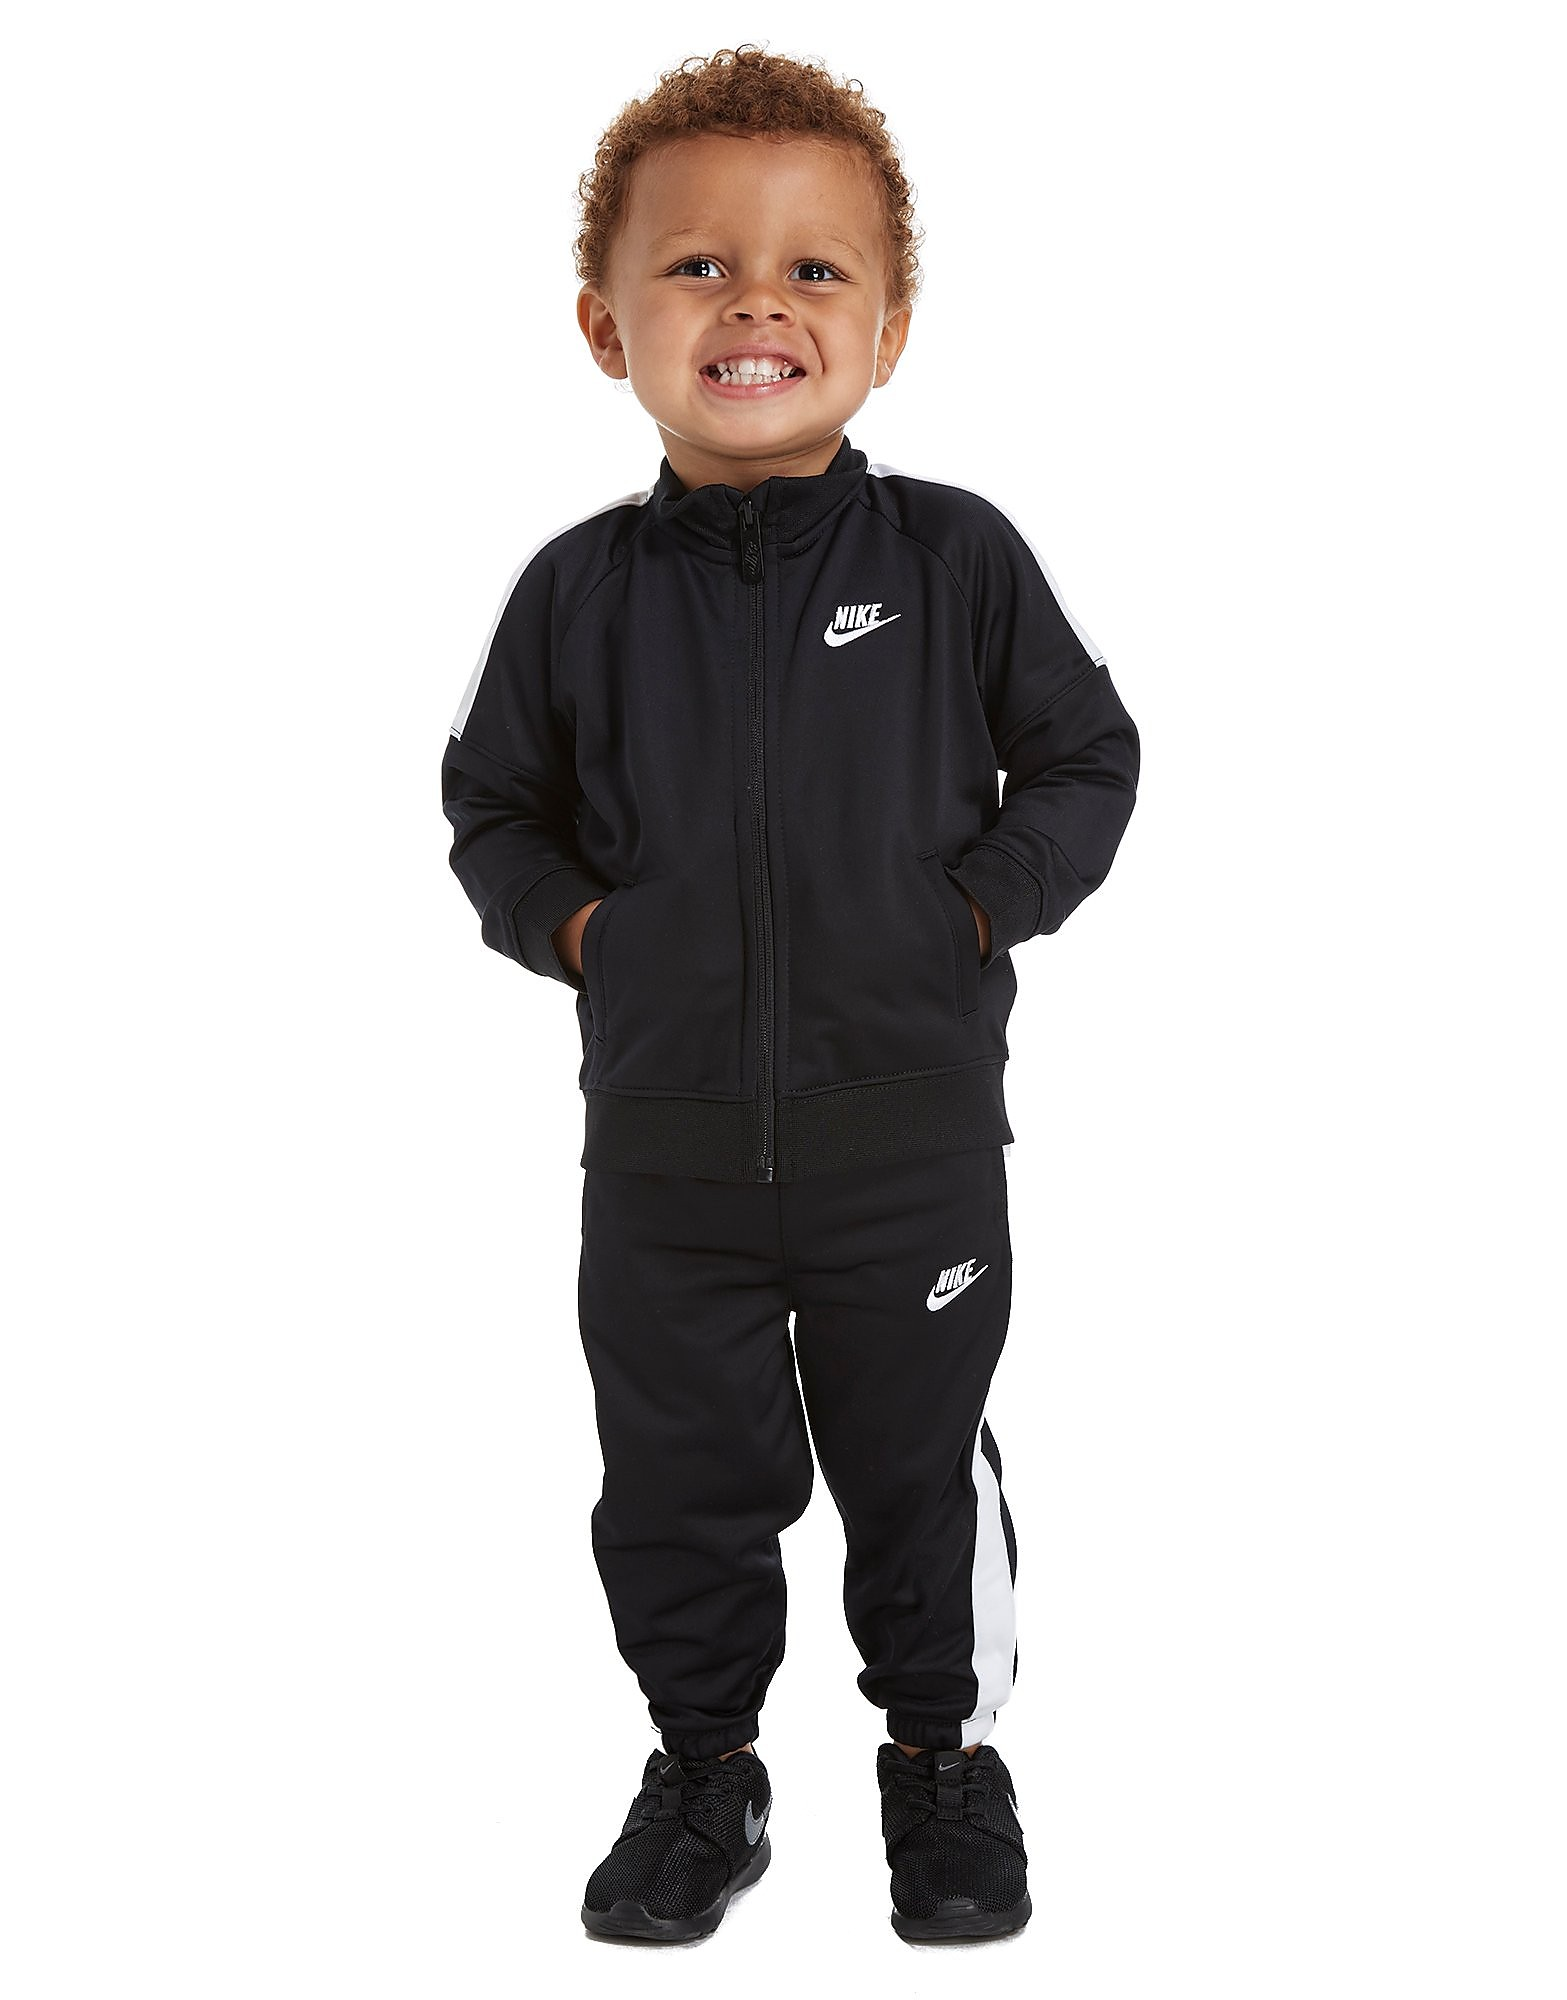 Nike Tribute Suit Infant